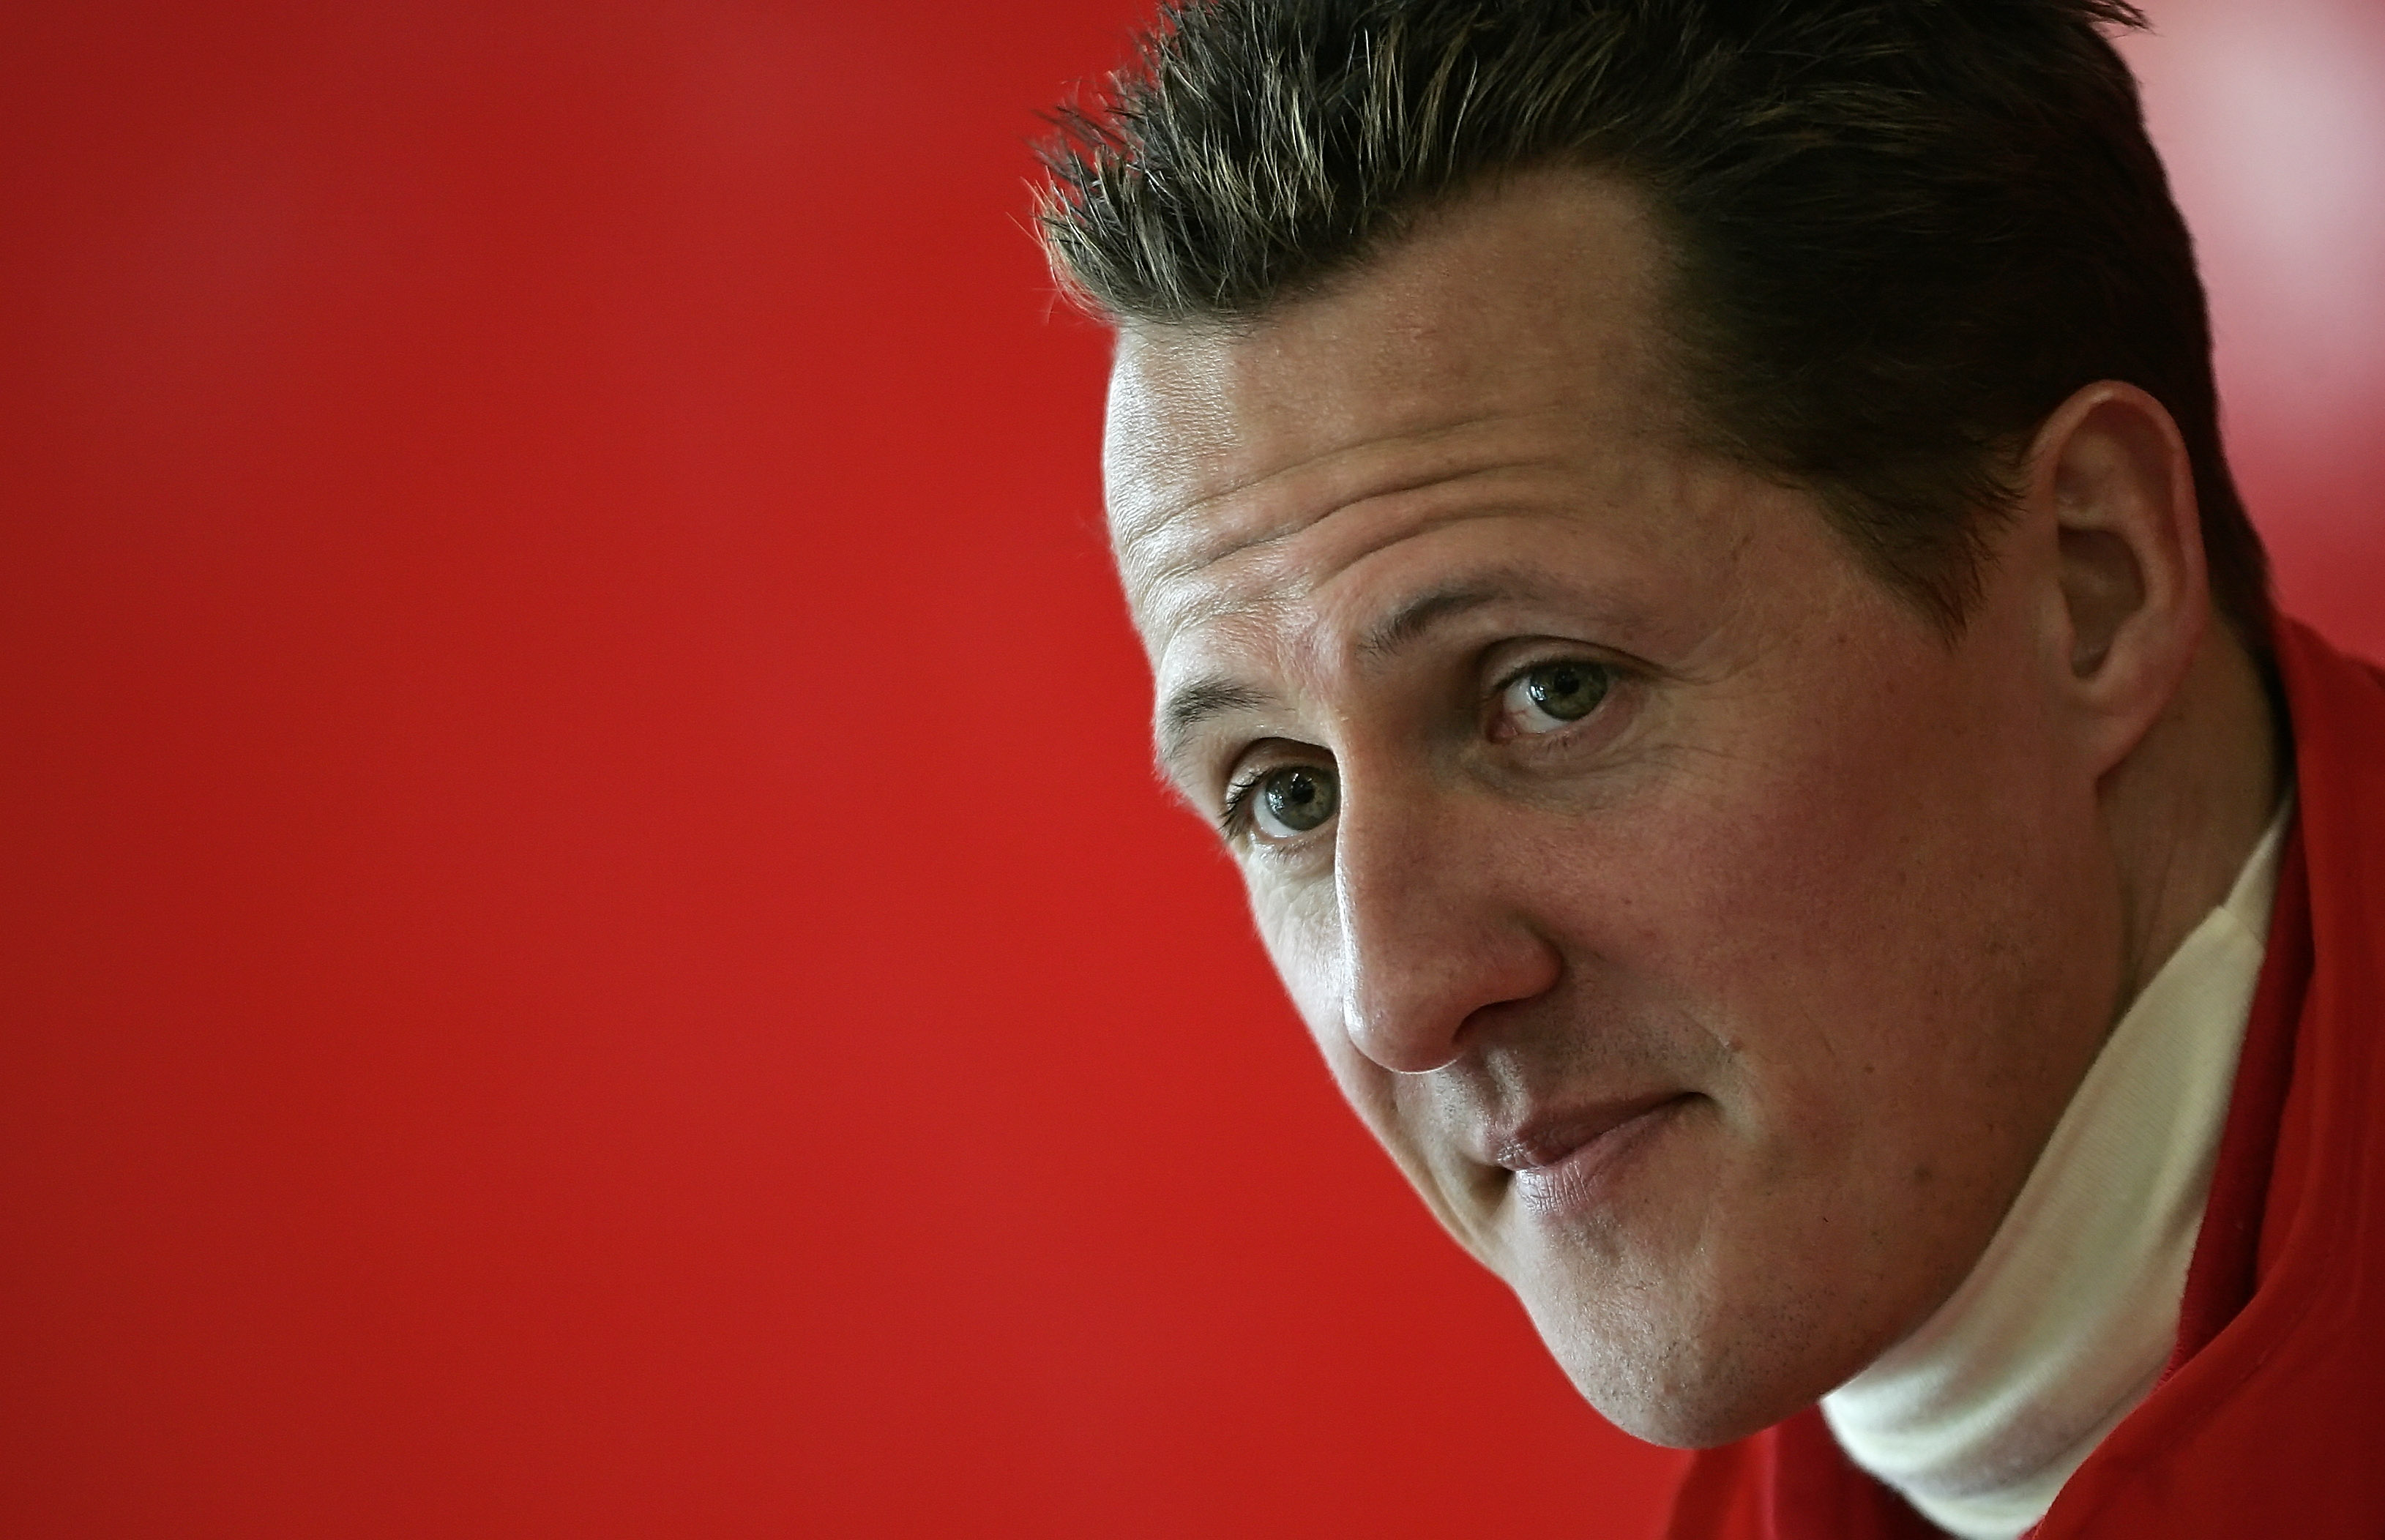 'Schumacher will be not Schumacher – even if he emerges from coma' by Eurosport